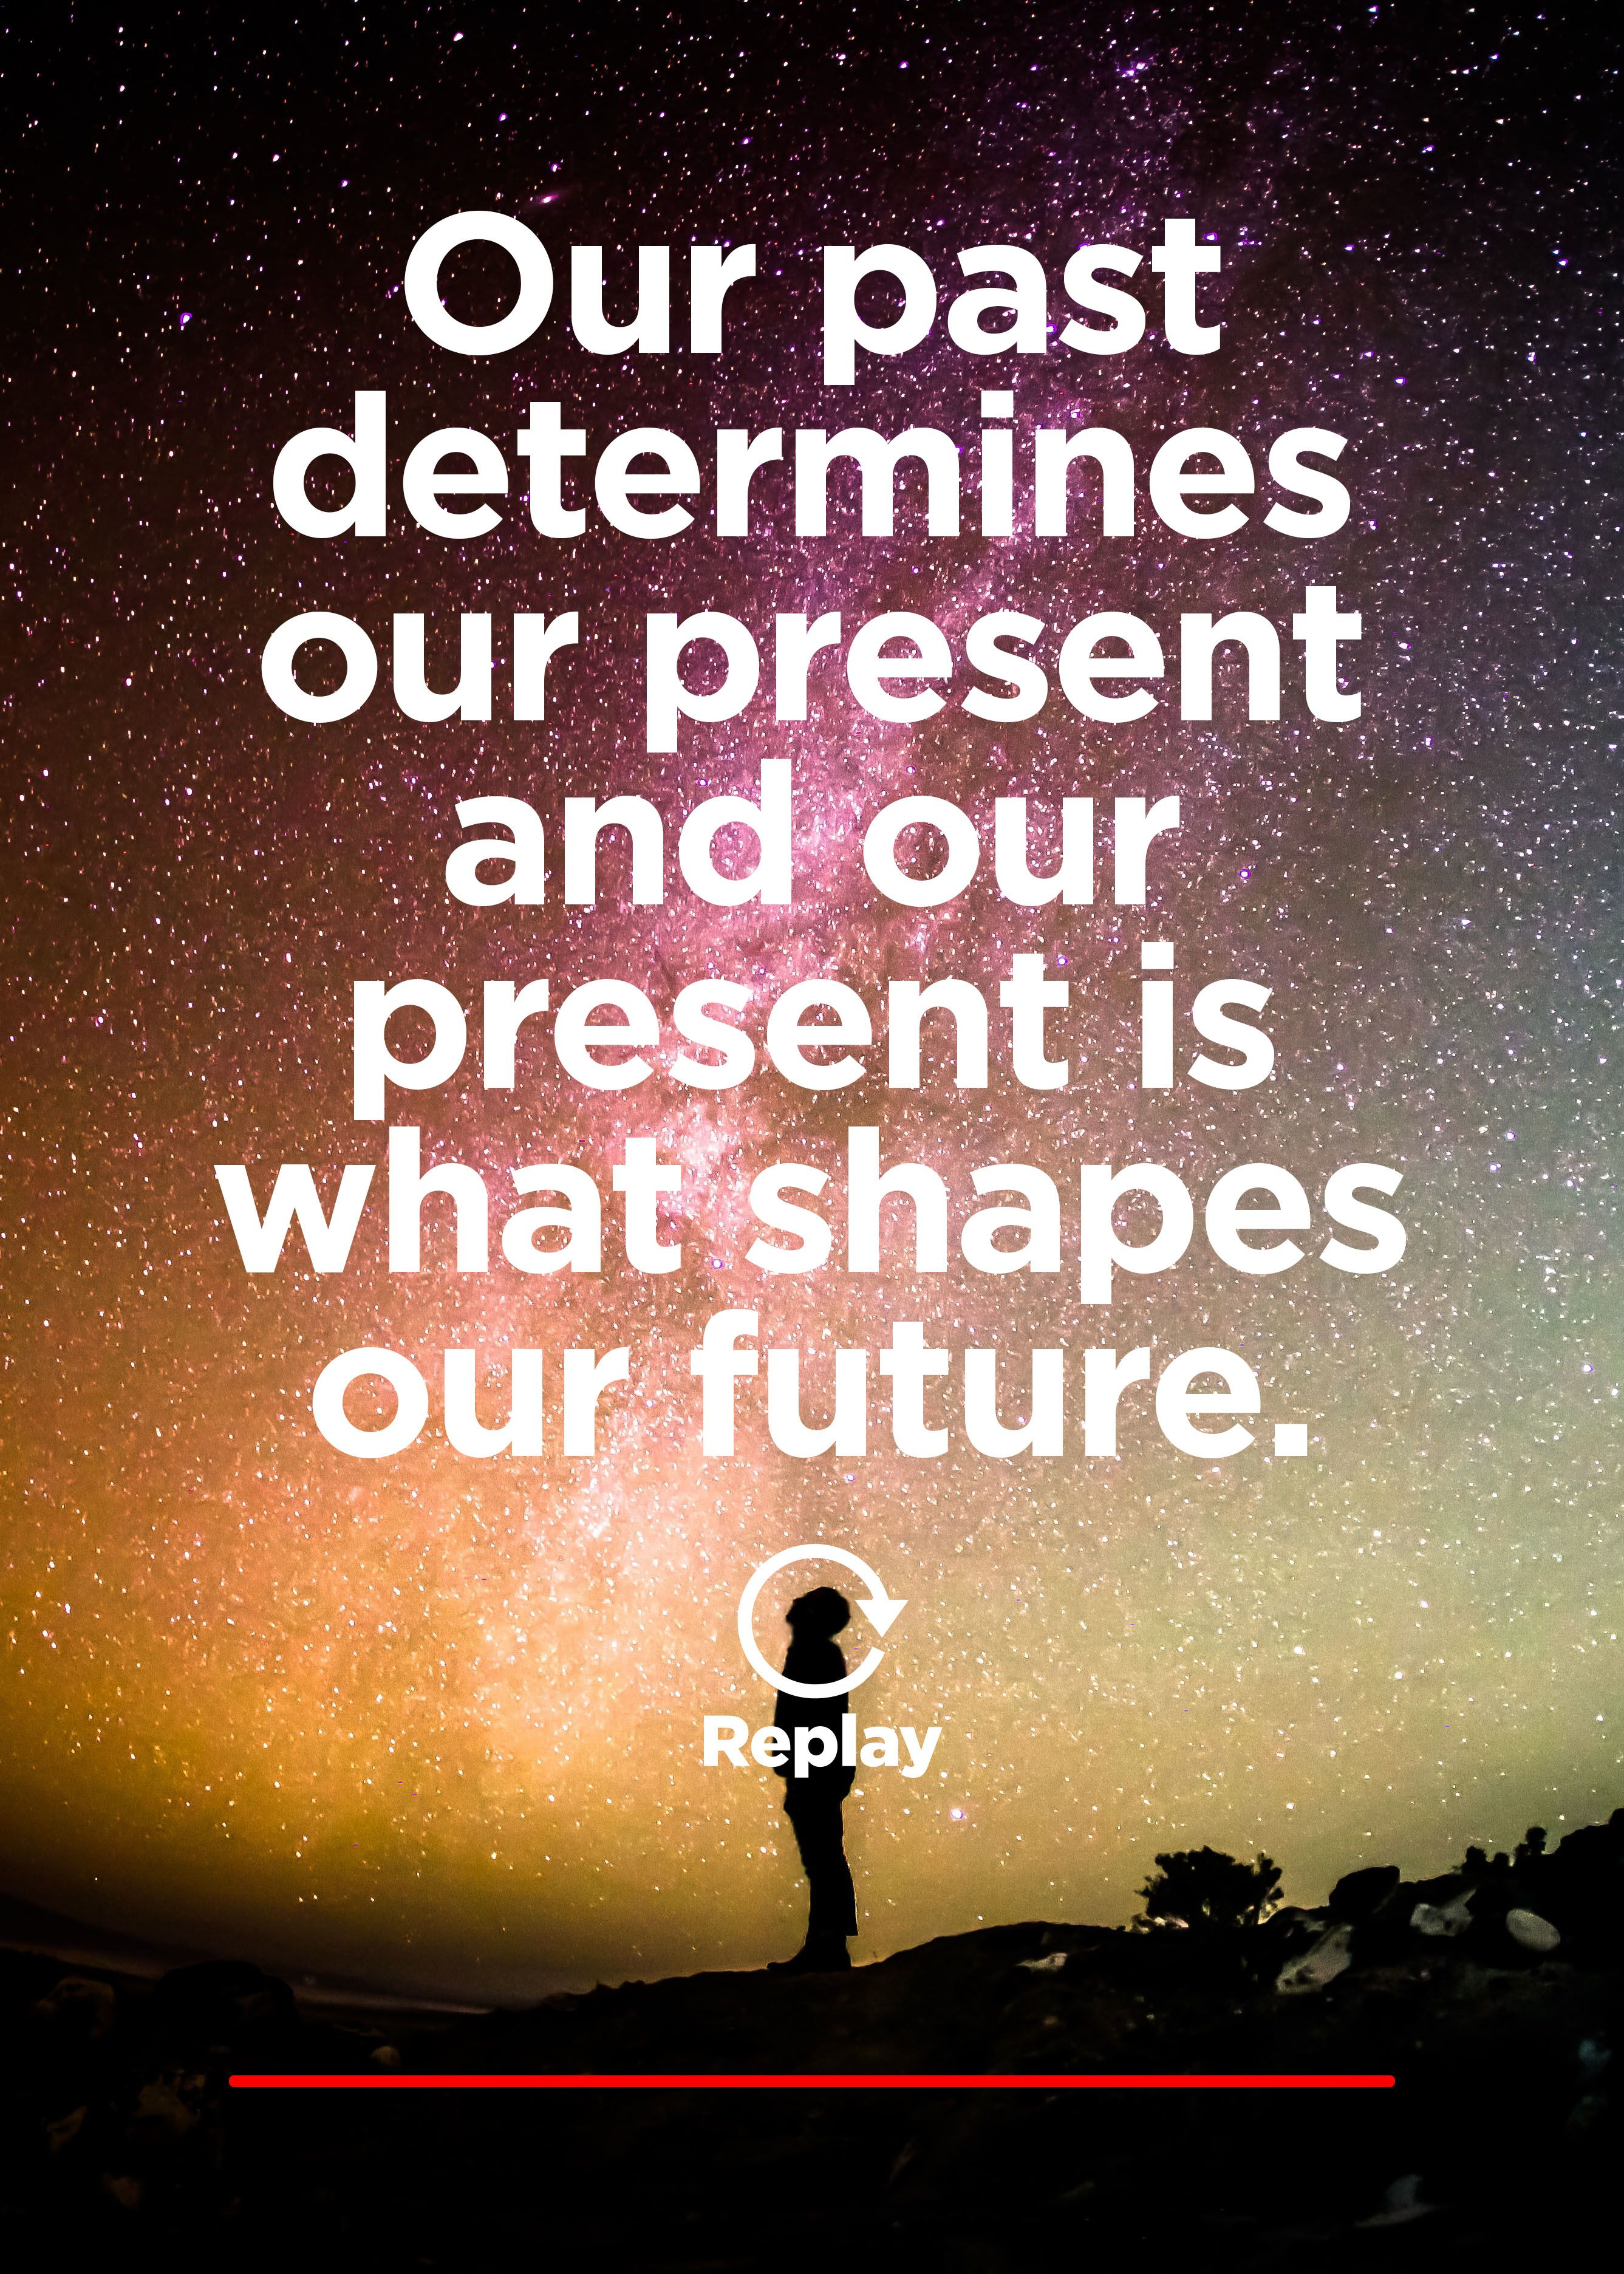 Quotations About Past And Future : quotations, about, future, Determines, Present, Shapes, Future., Future, Quotes,, Christian, Quotations